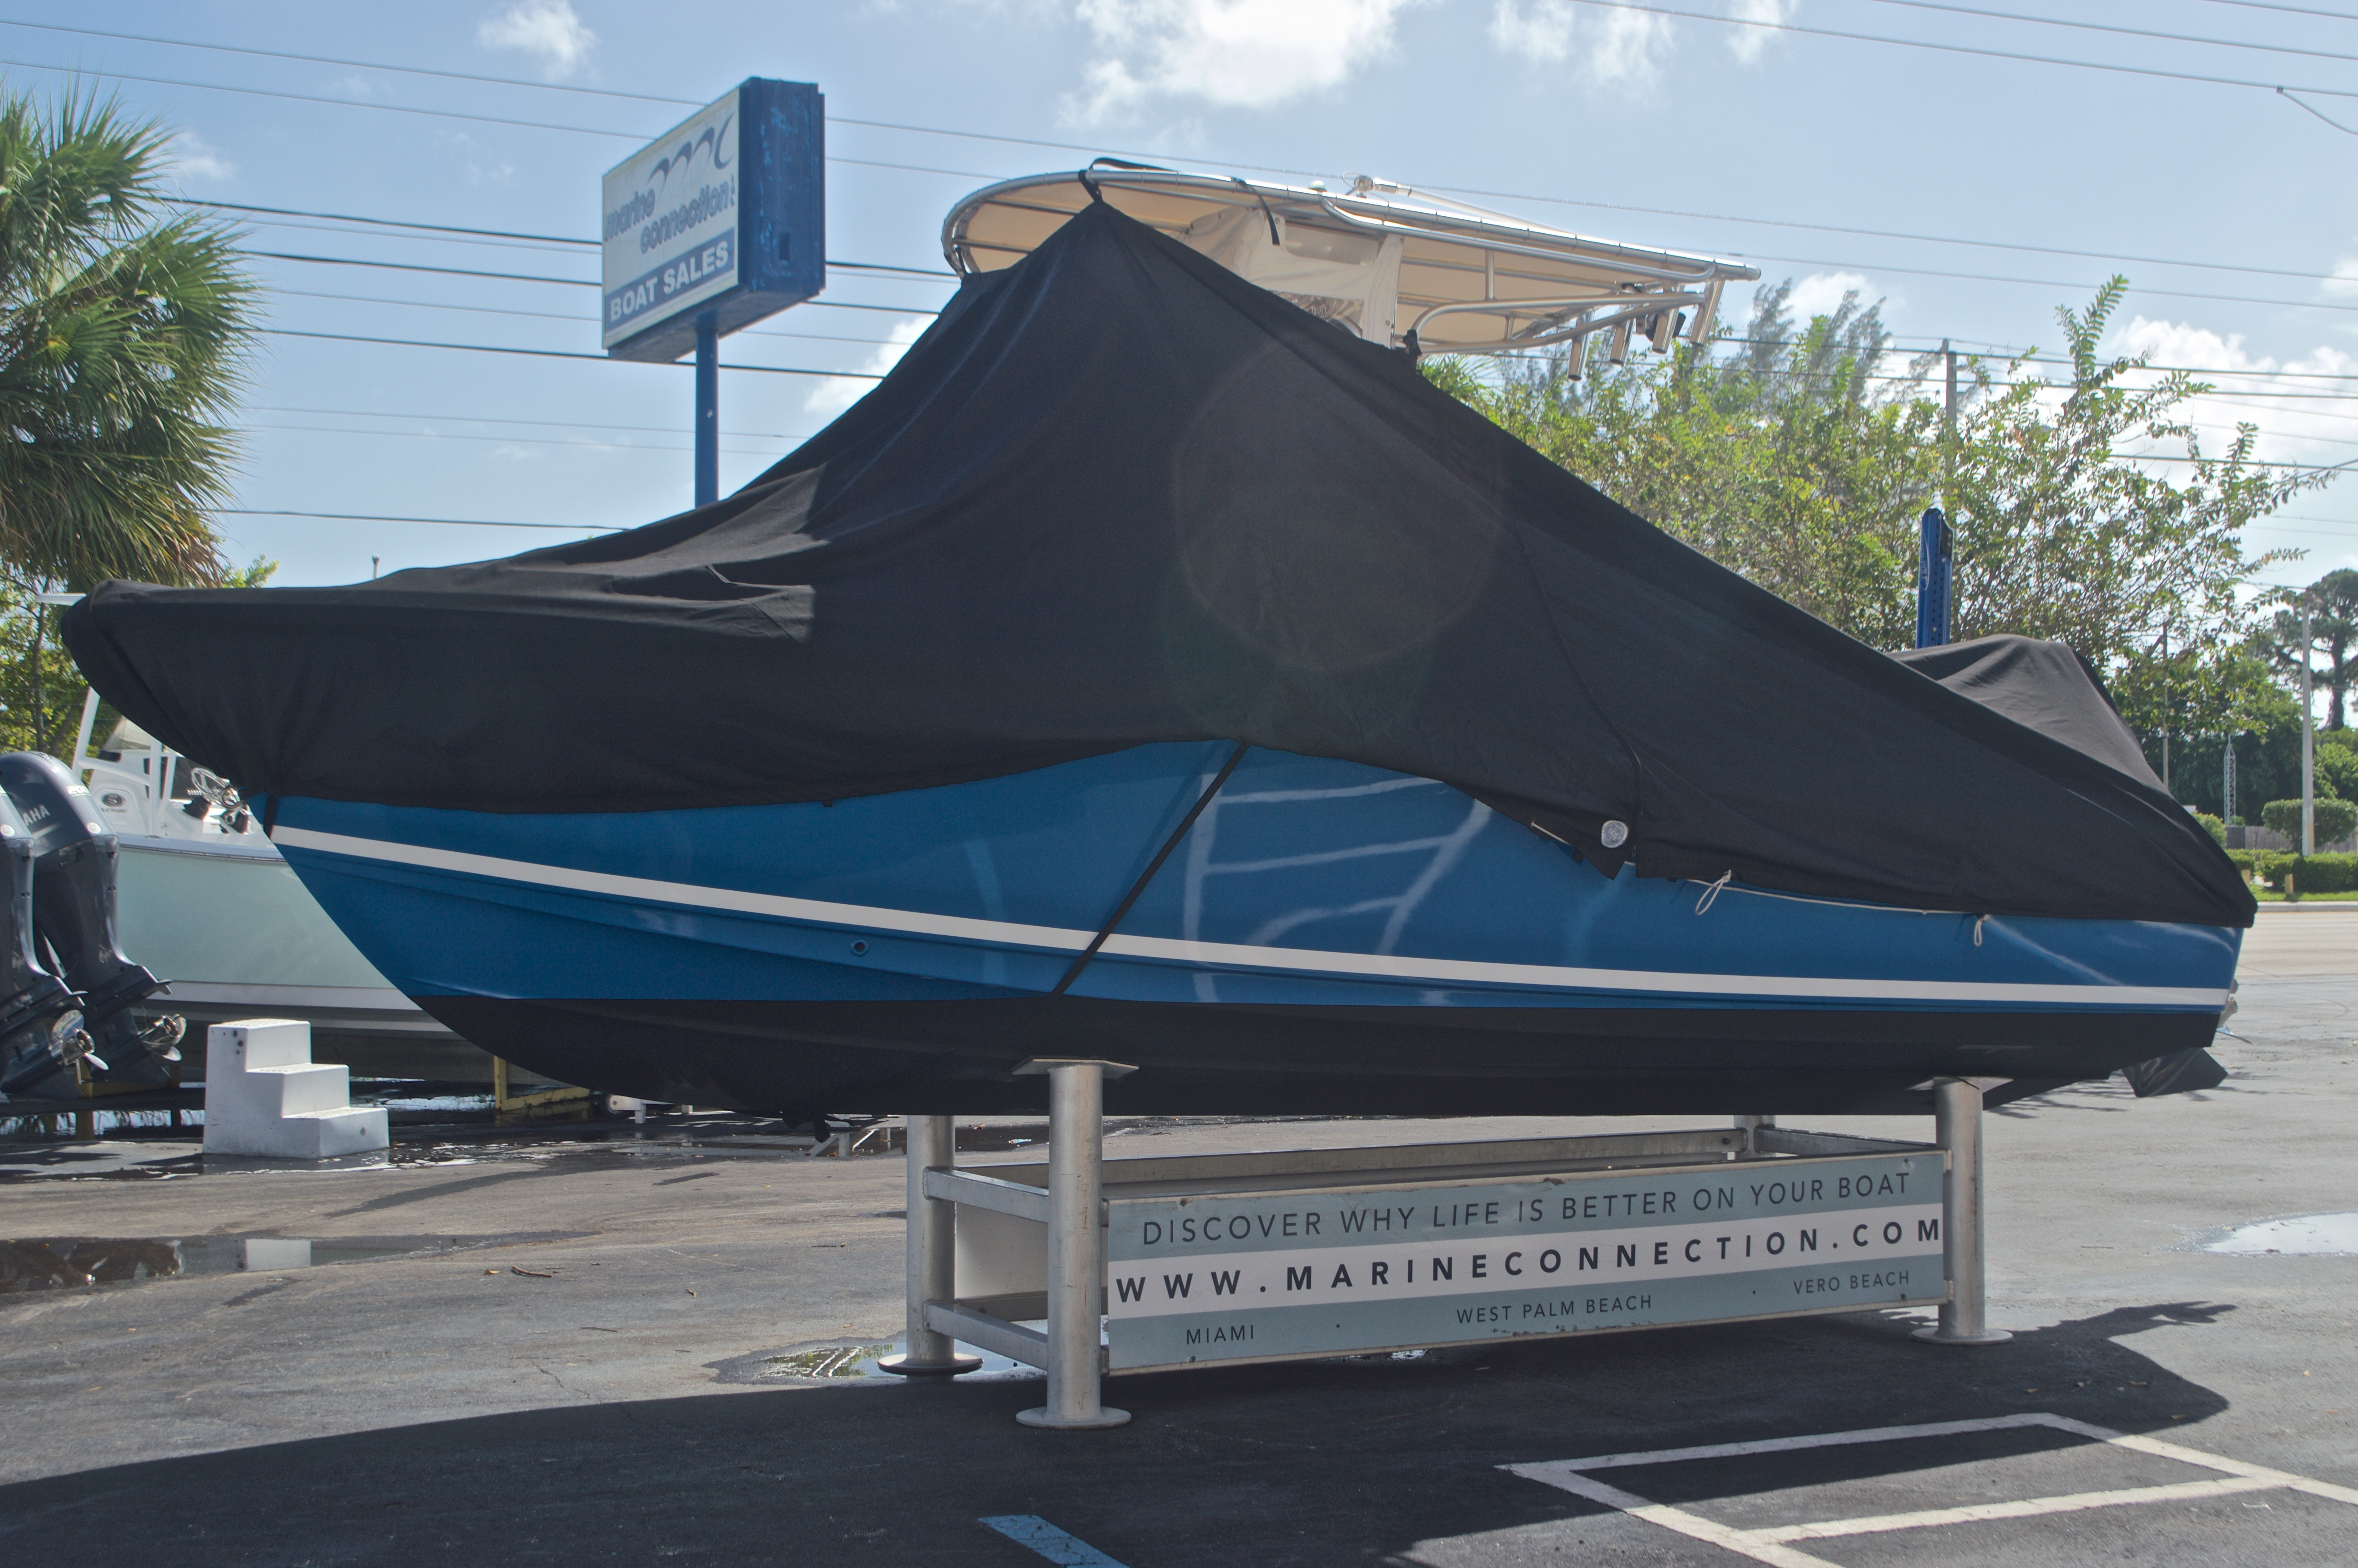 Thumbnail 58 for Used 2009 Sea Hunt 207 Triton boat for sale in West Palm Beach, FL